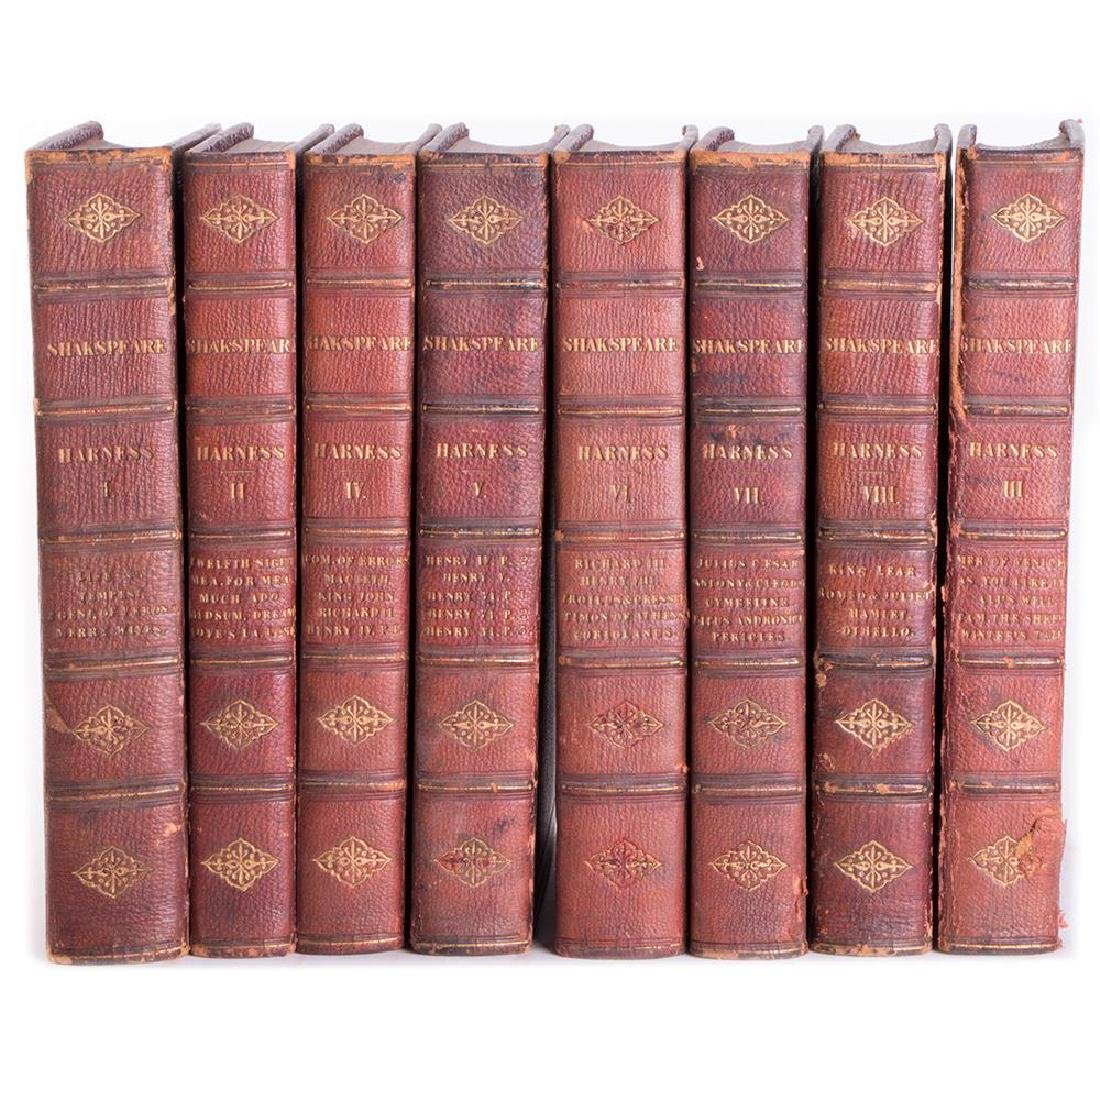 Shakespeare's Dramatic Works. Eight volume set